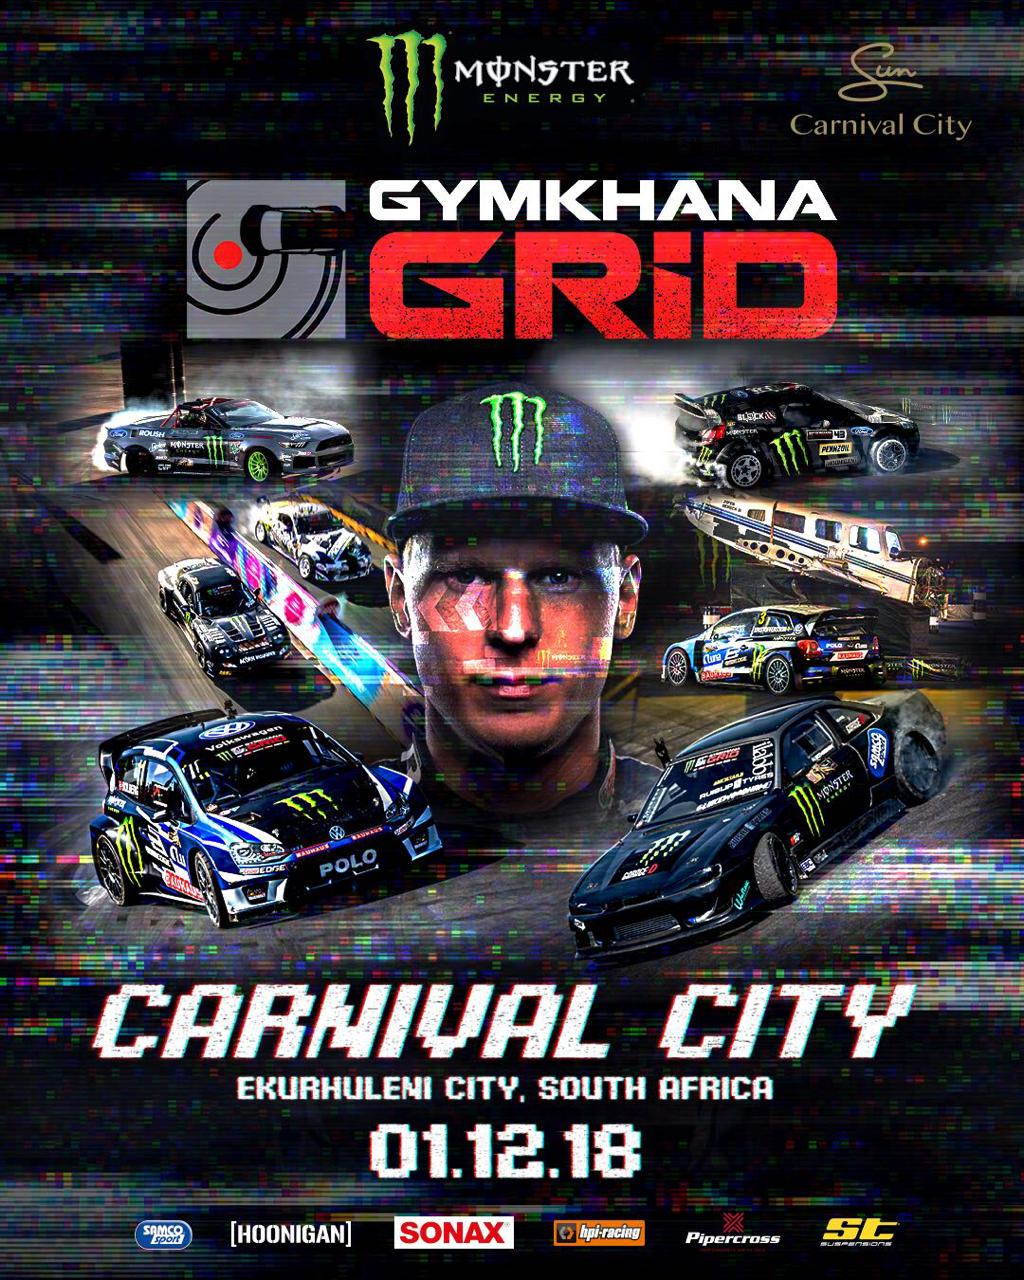 Gymkhana GRiD Returns to Carnival City in South Africa for 2018